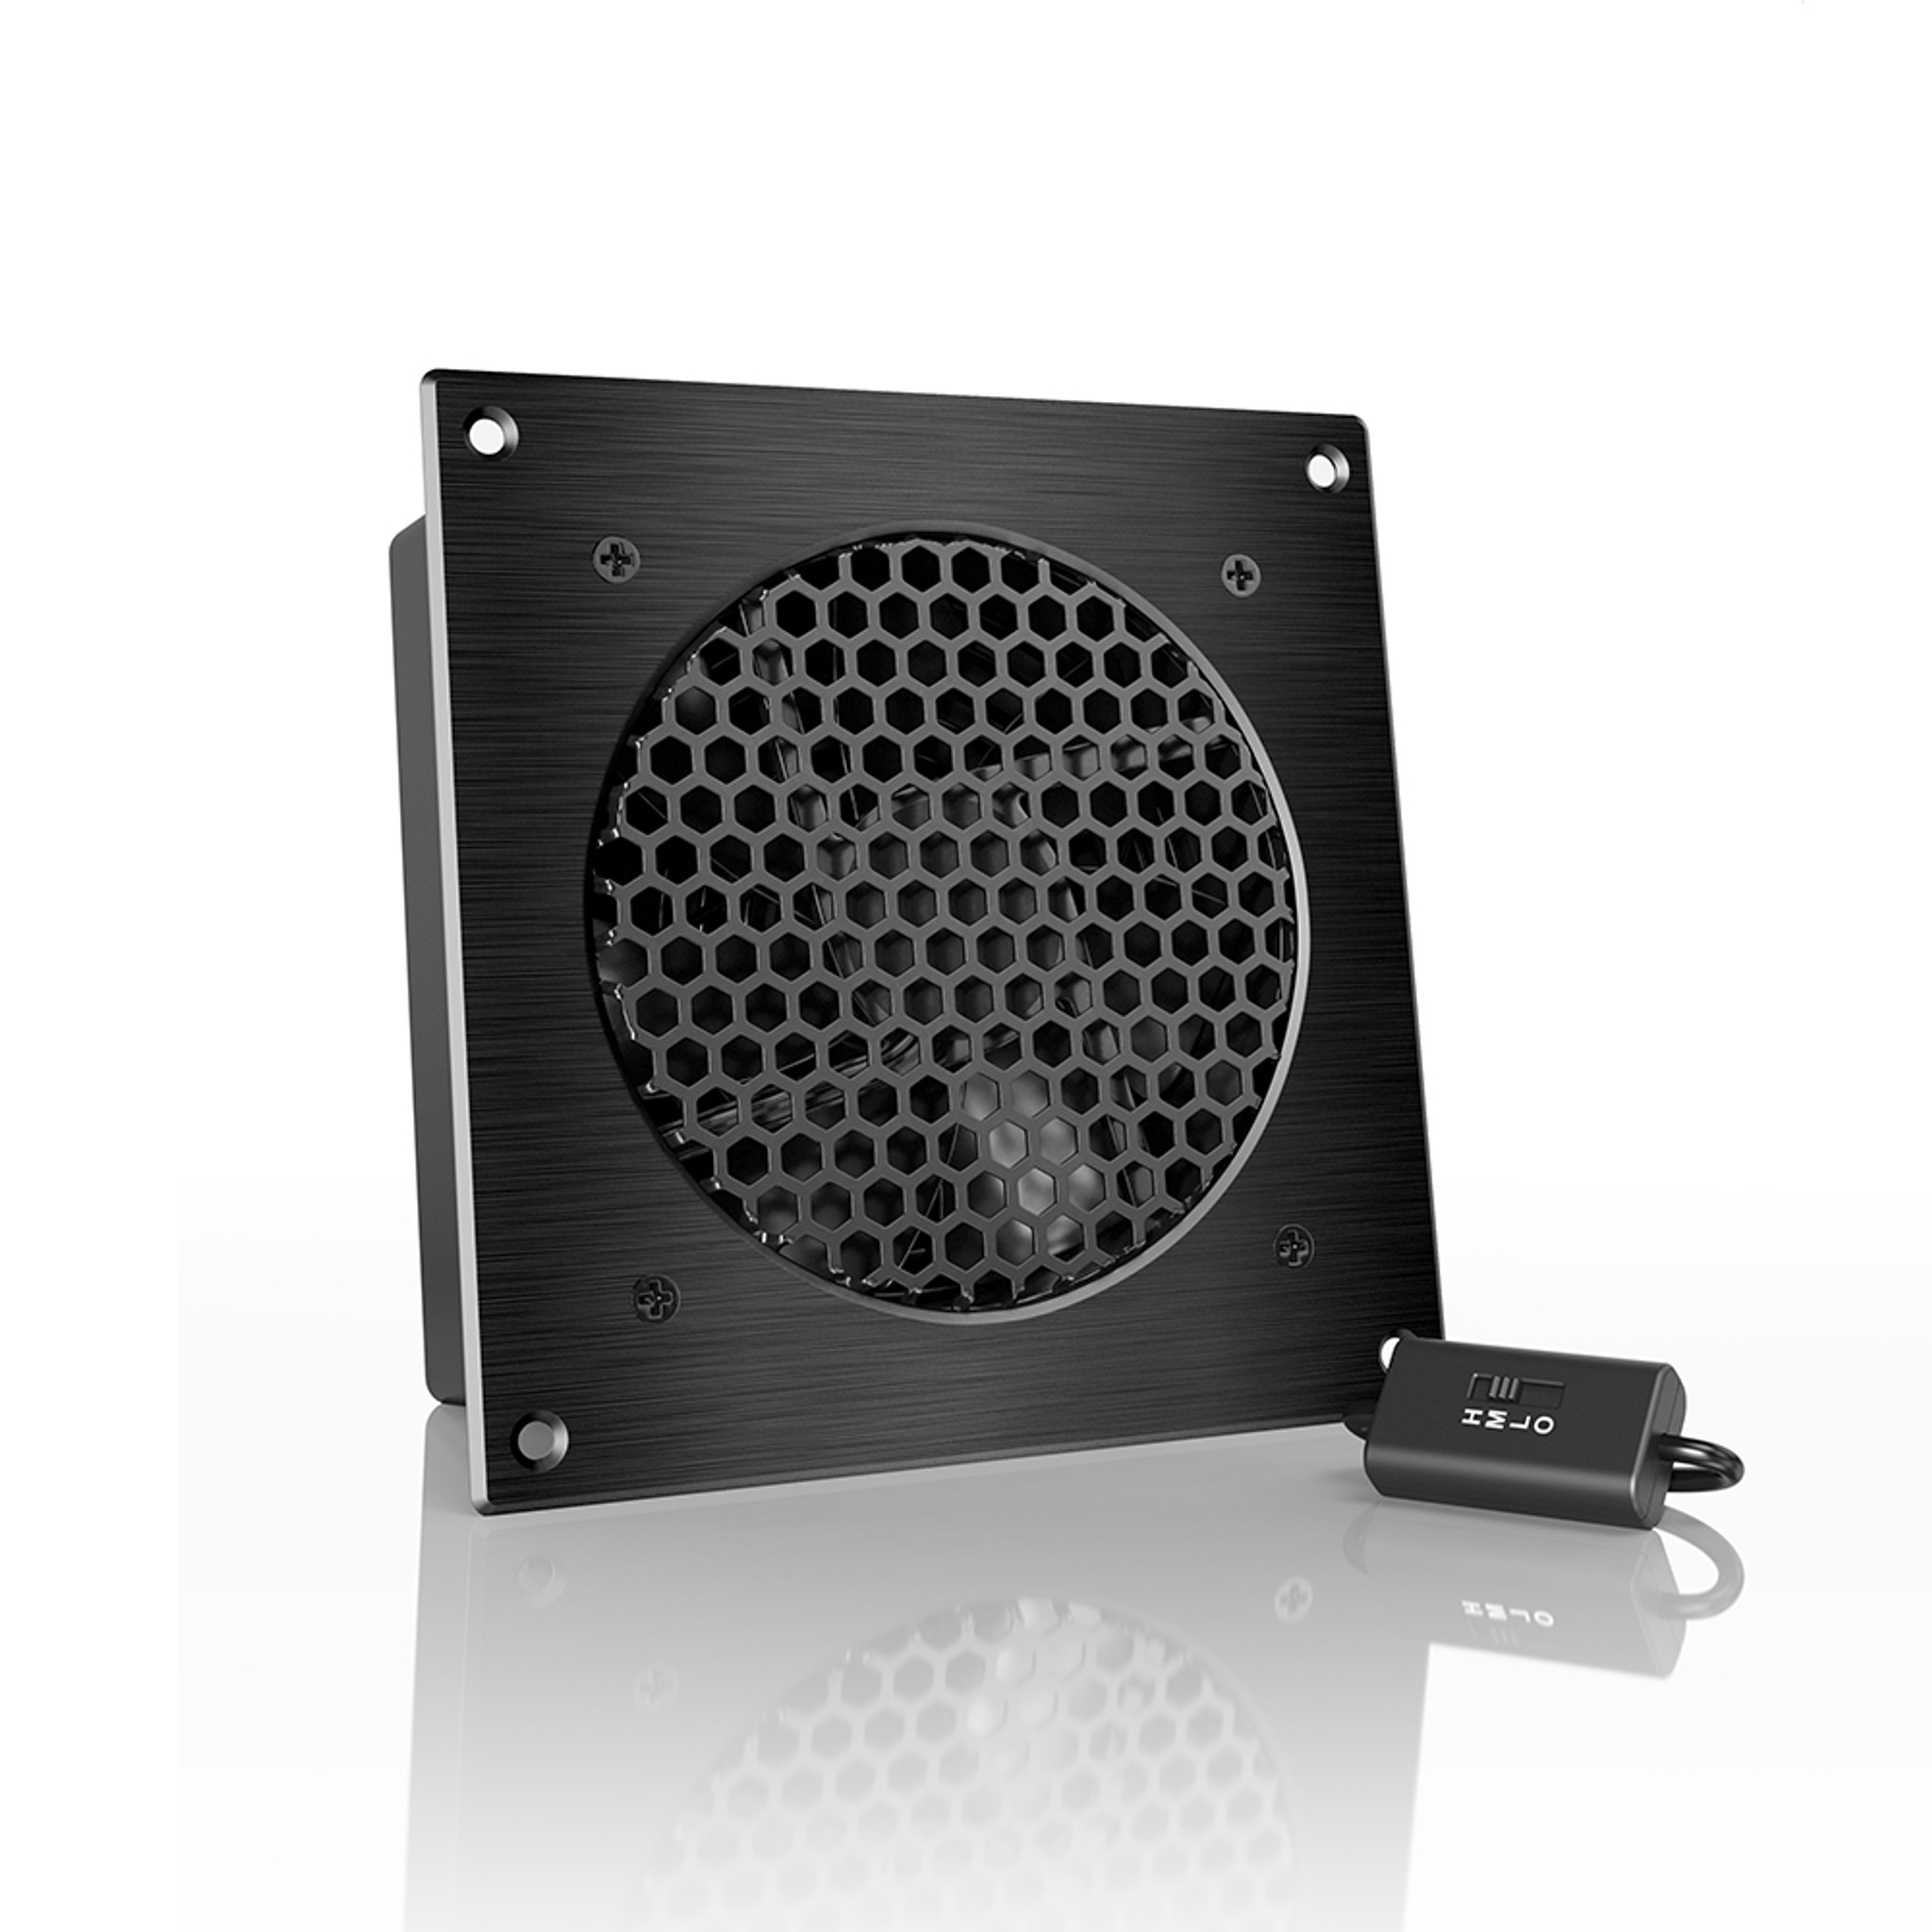 Home Cooling Fans : Airplate s home theater and av quiet cabinet cooling fan